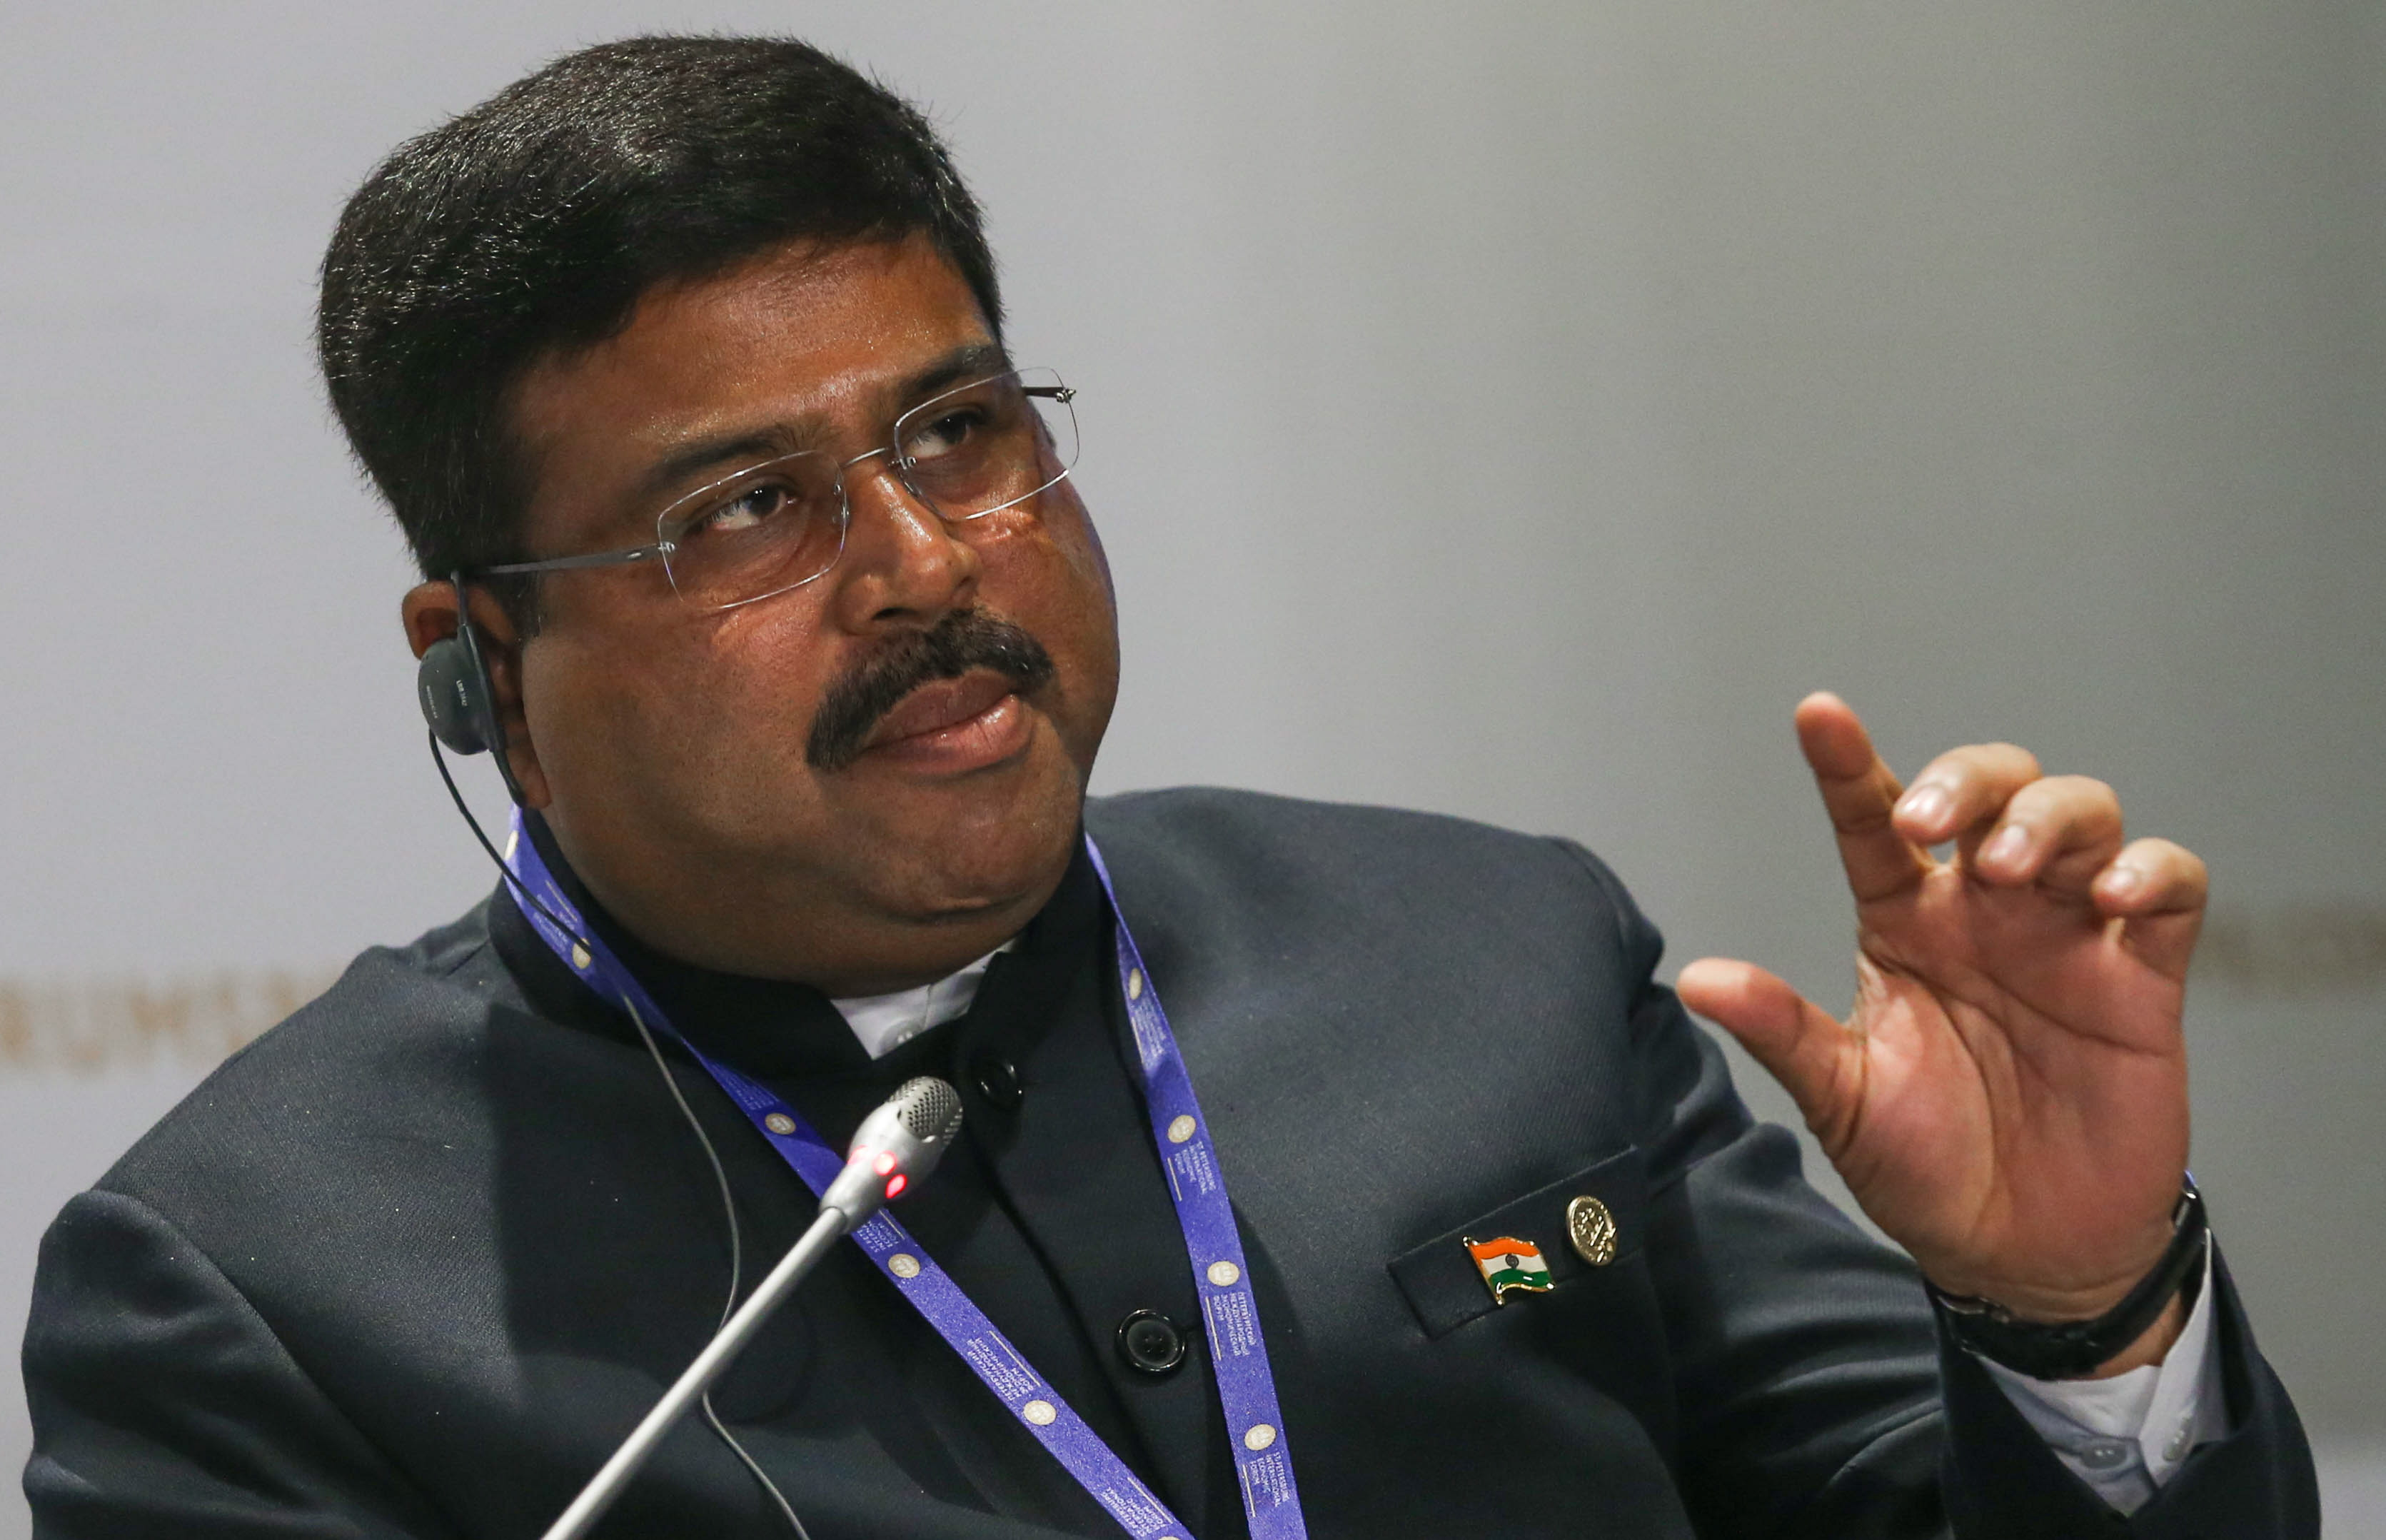 Dharmendra Pradhan, Indian Minister for Oil and Natural Gas.